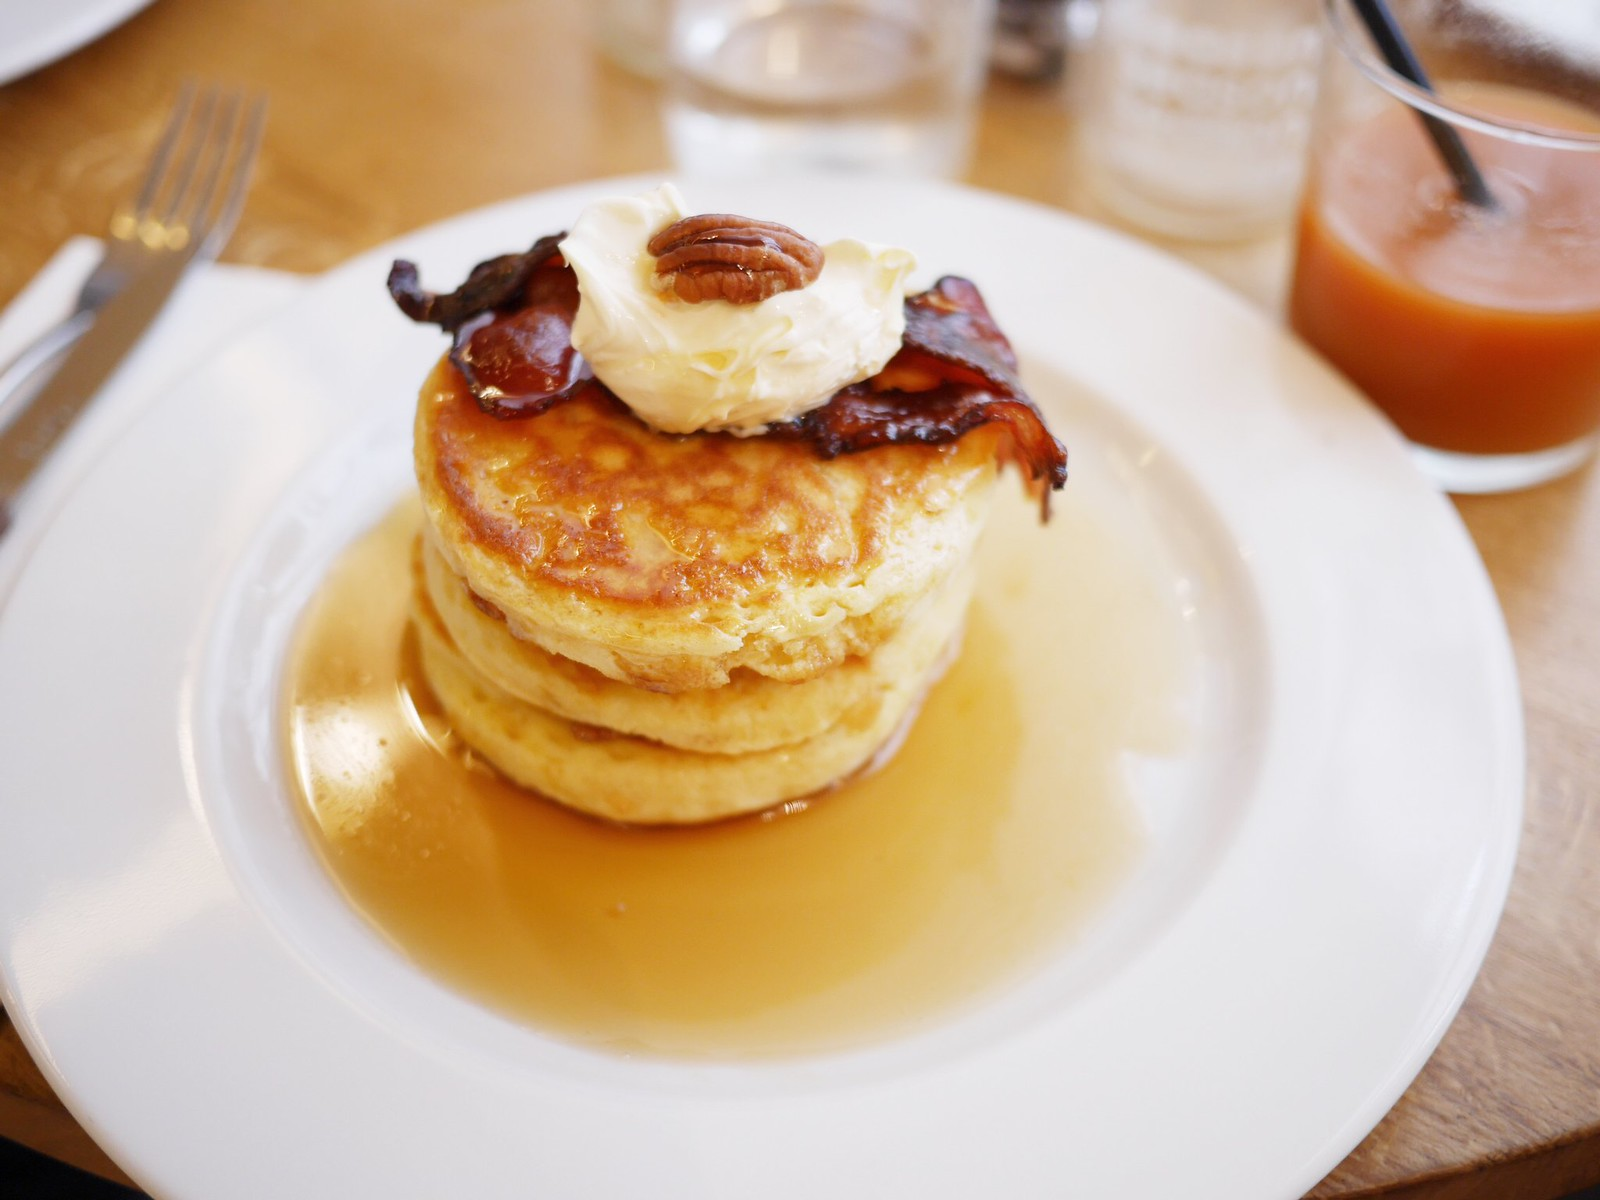 #breakfastinParis, Breakfast at Season in Marais. #dempancakes